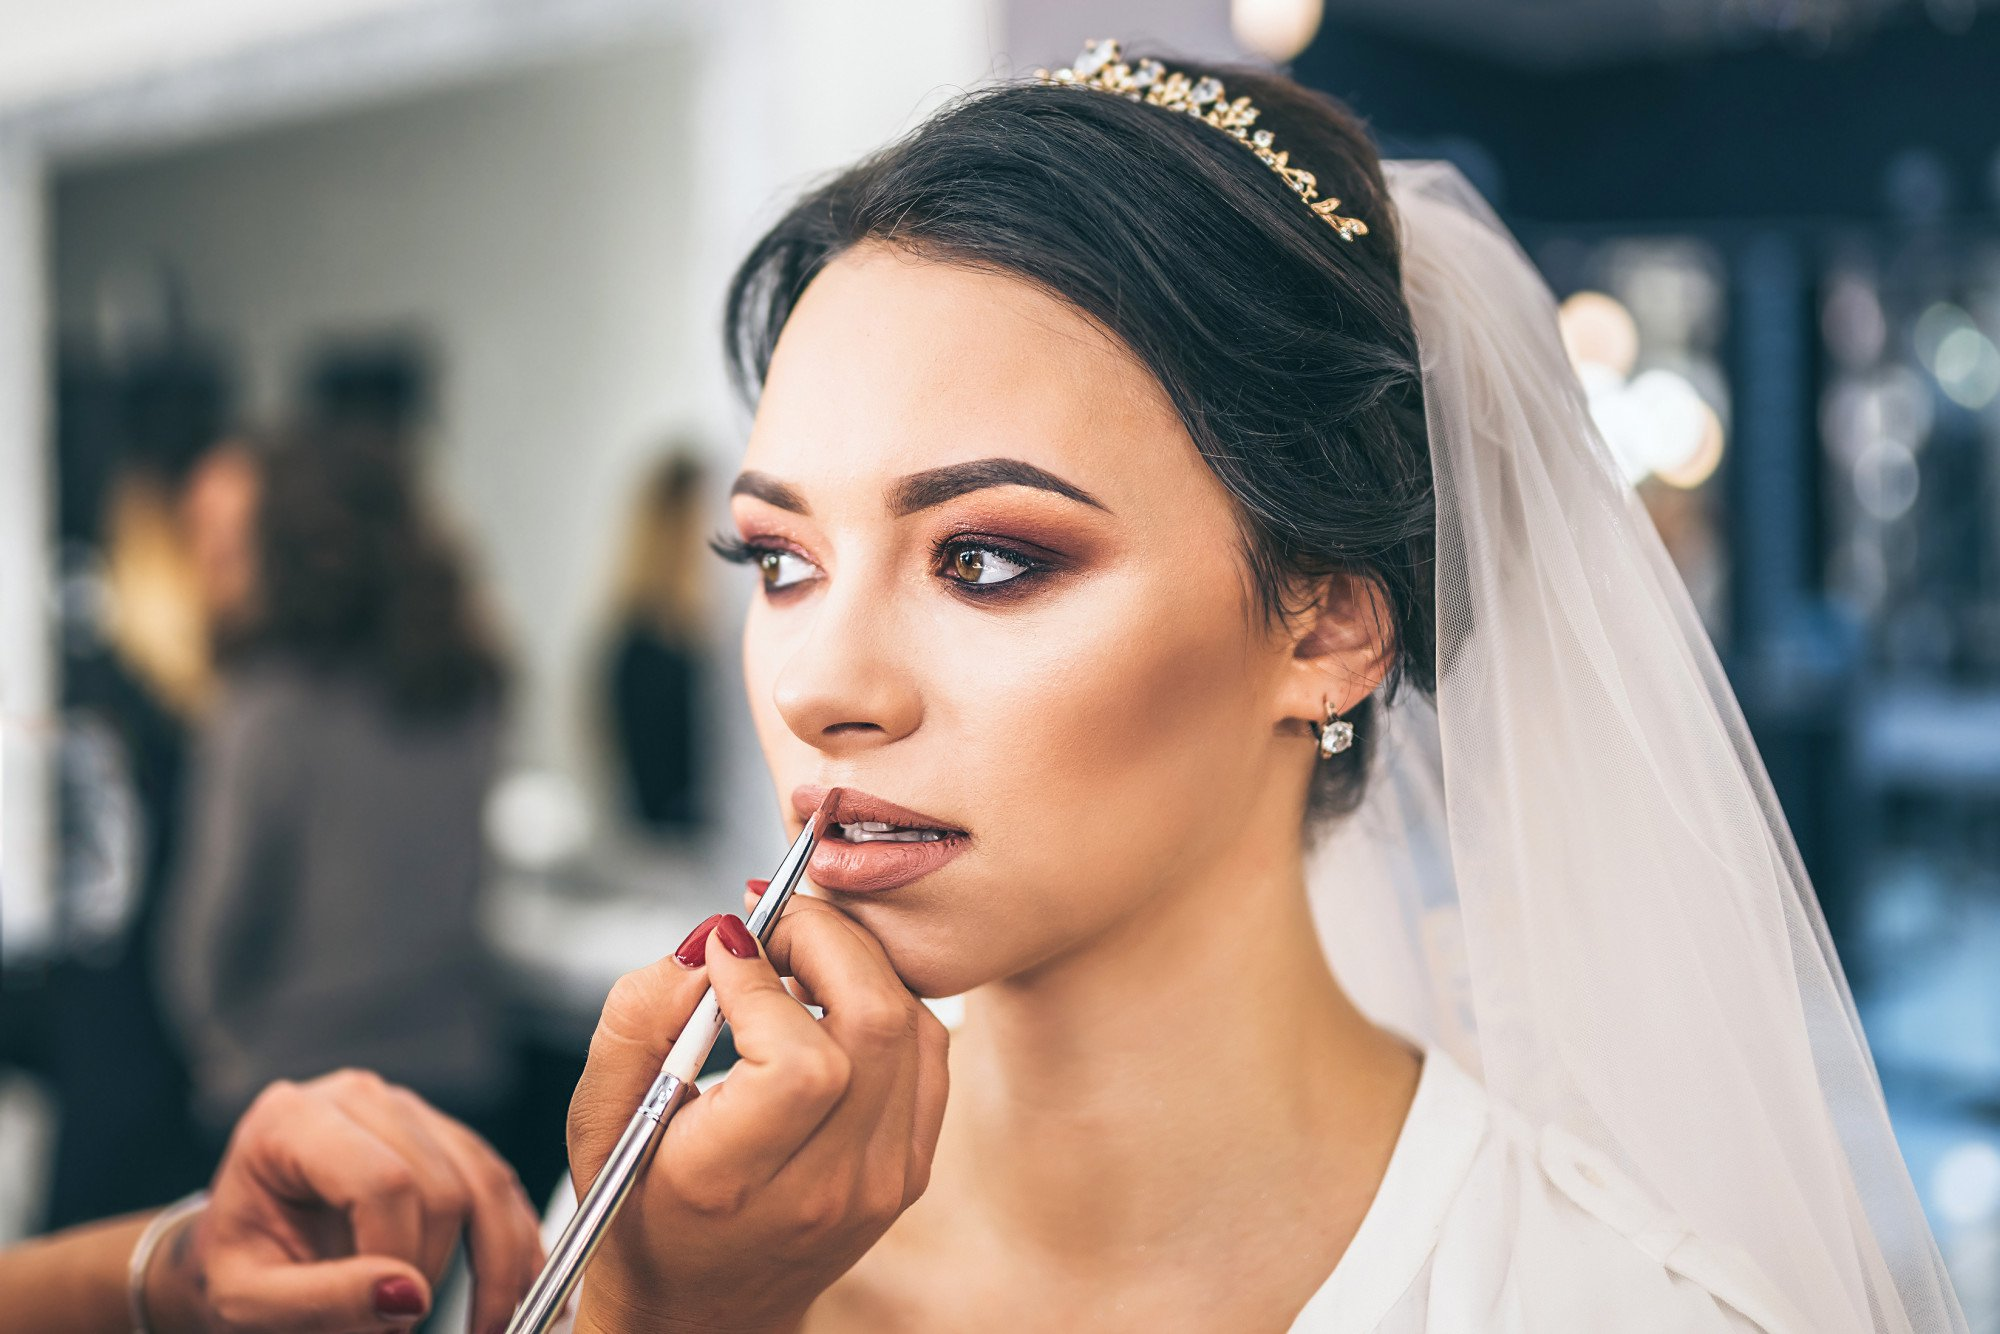 Makeup for Photos: 4 Tips for Your Wedding Day